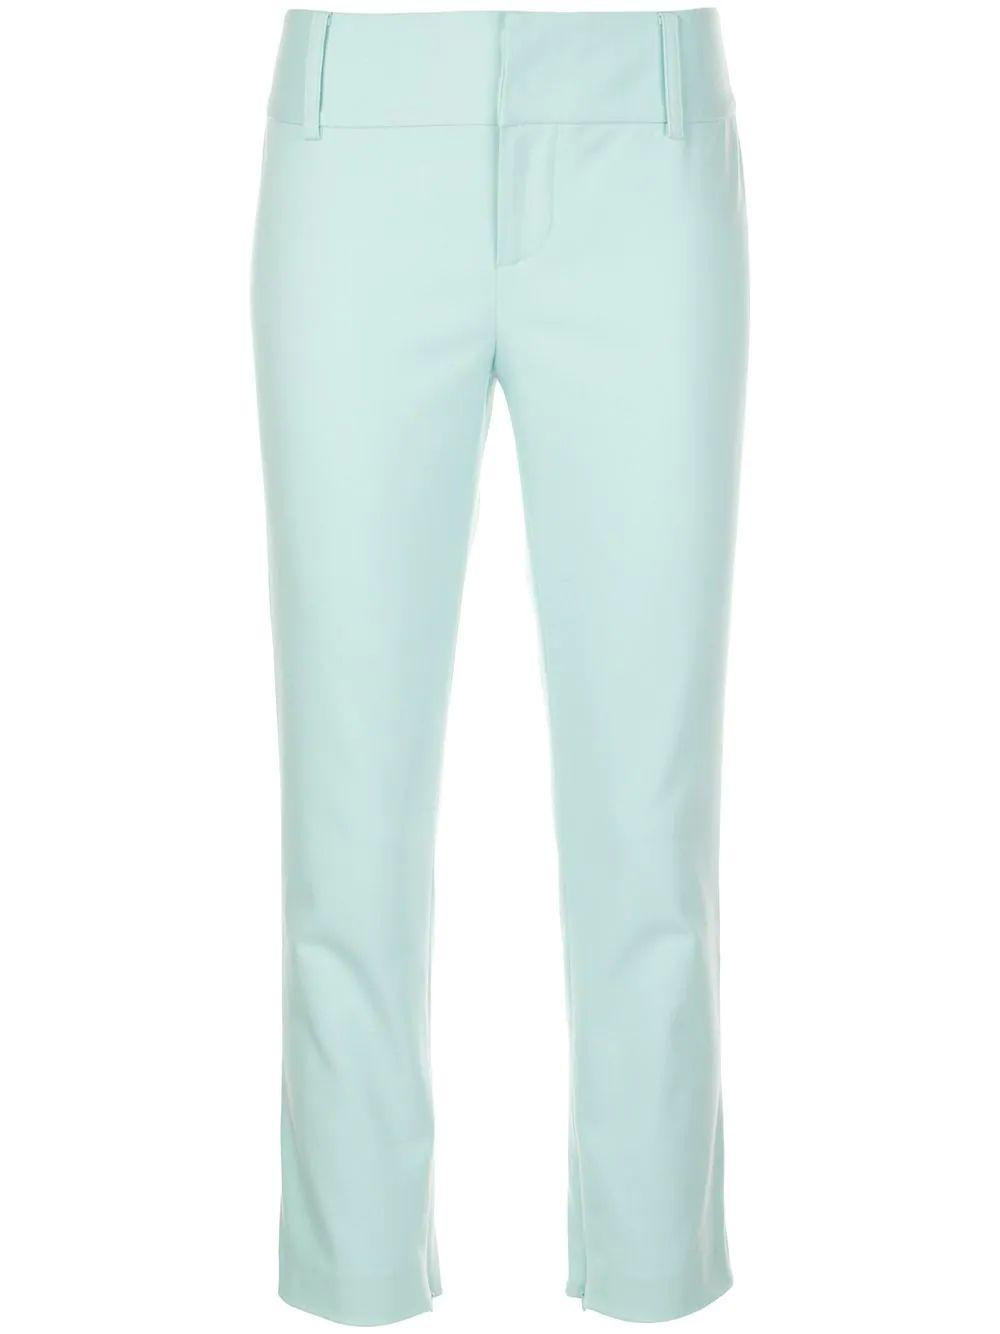 Stacey Slim Ankle Pant